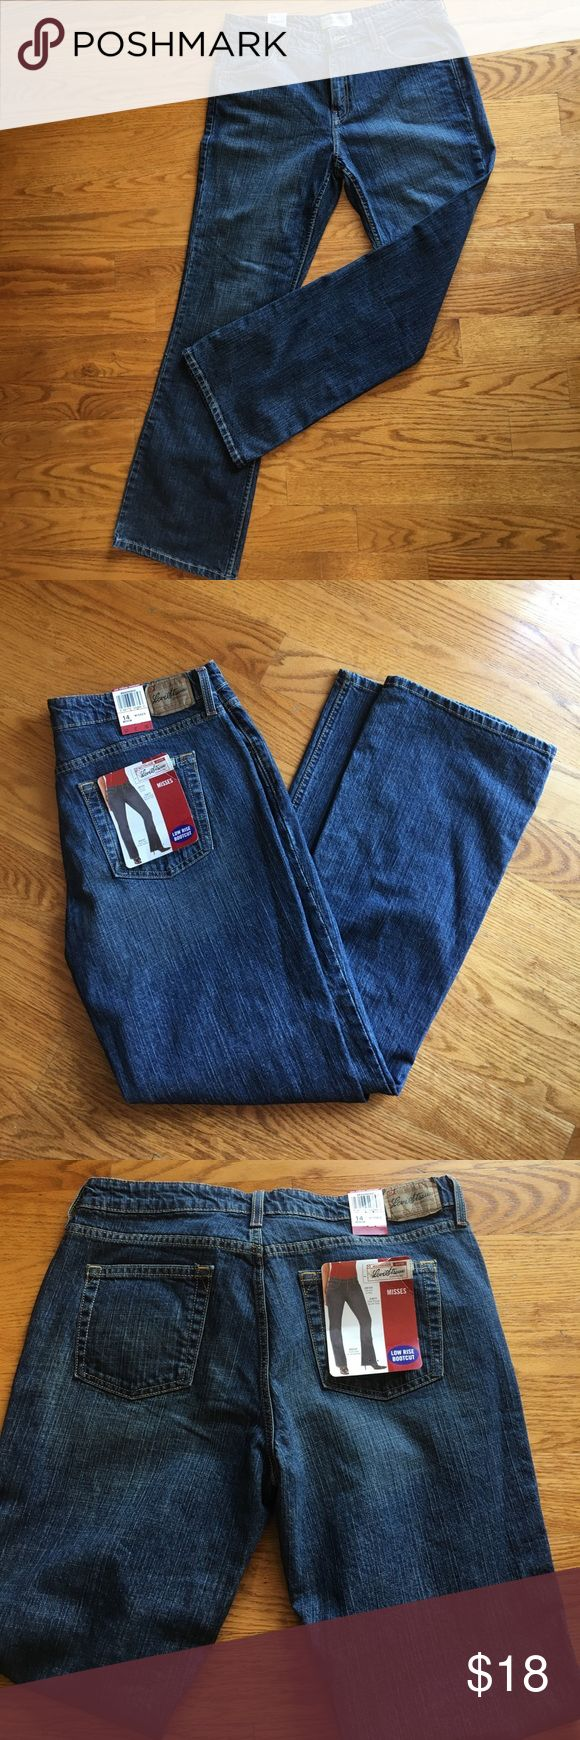 NWT Levi's Strauss signature bootcut jeans NWT Levi's Strauss signature low rise bootcut jeans size 14.  Sits low on hips, slim fit through hip and thigh. Bootcut stretch.  Smoke free and pet free home. Signature by Levi Strauss Jeans Boot Cut